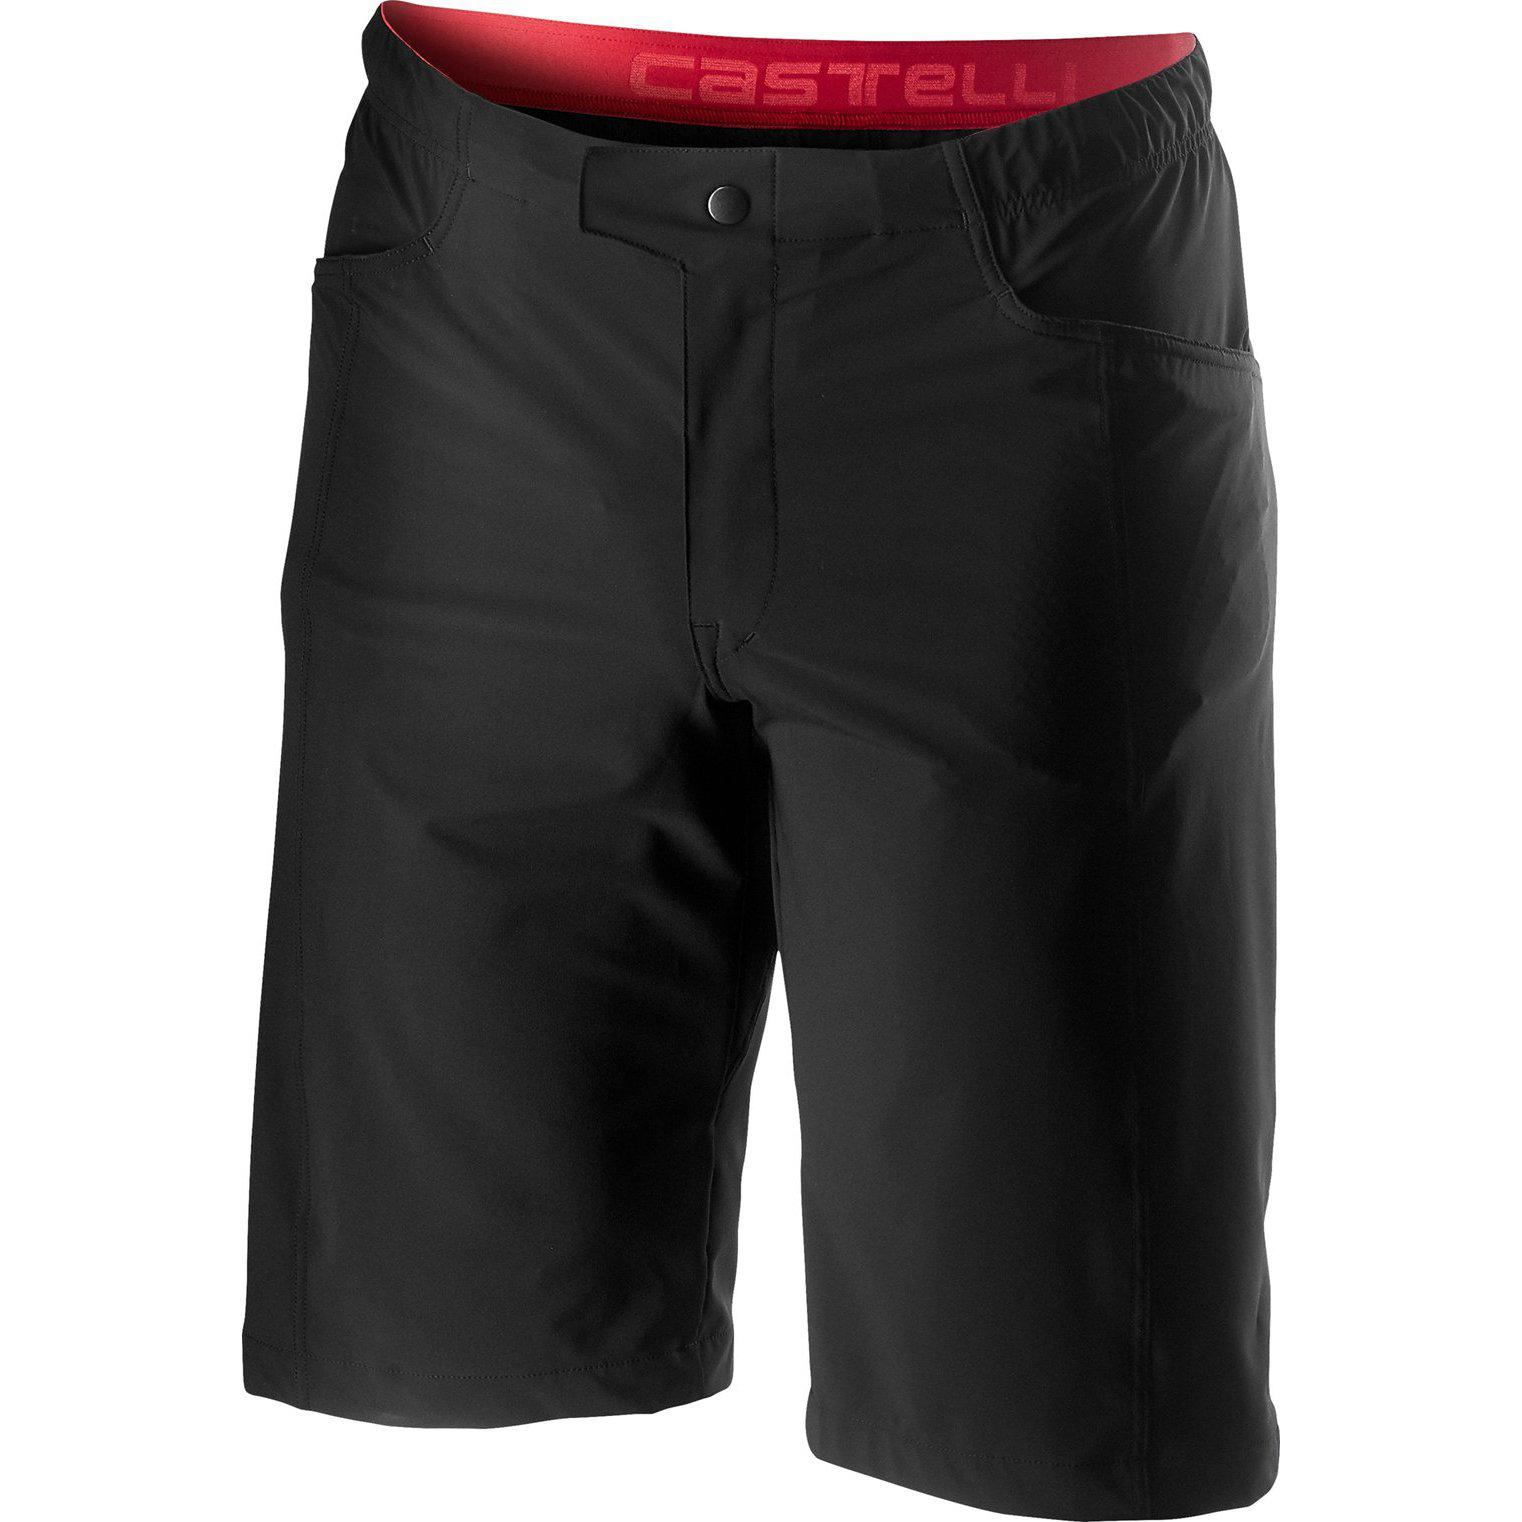 Castelli-Castelli Unlimited Baggy Short-Black-XS-CS200270101-saddleback-elite-performance-cycling